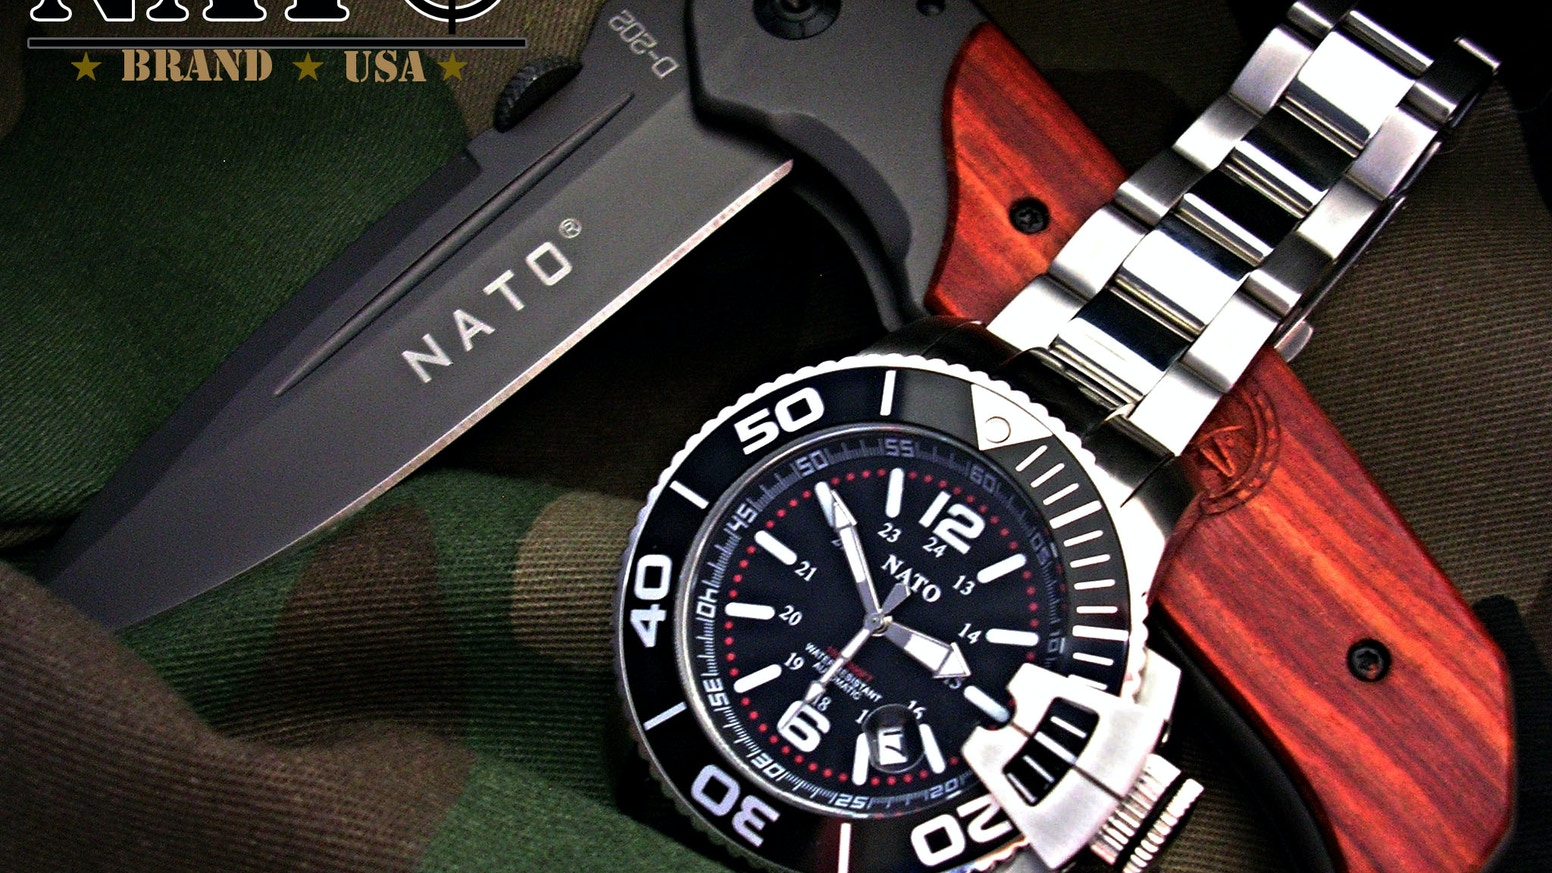 NATO Brand USA is releasing our Limited Edition watch. An everyday timepiece worn for every occasion. An outdoor adventure watch.